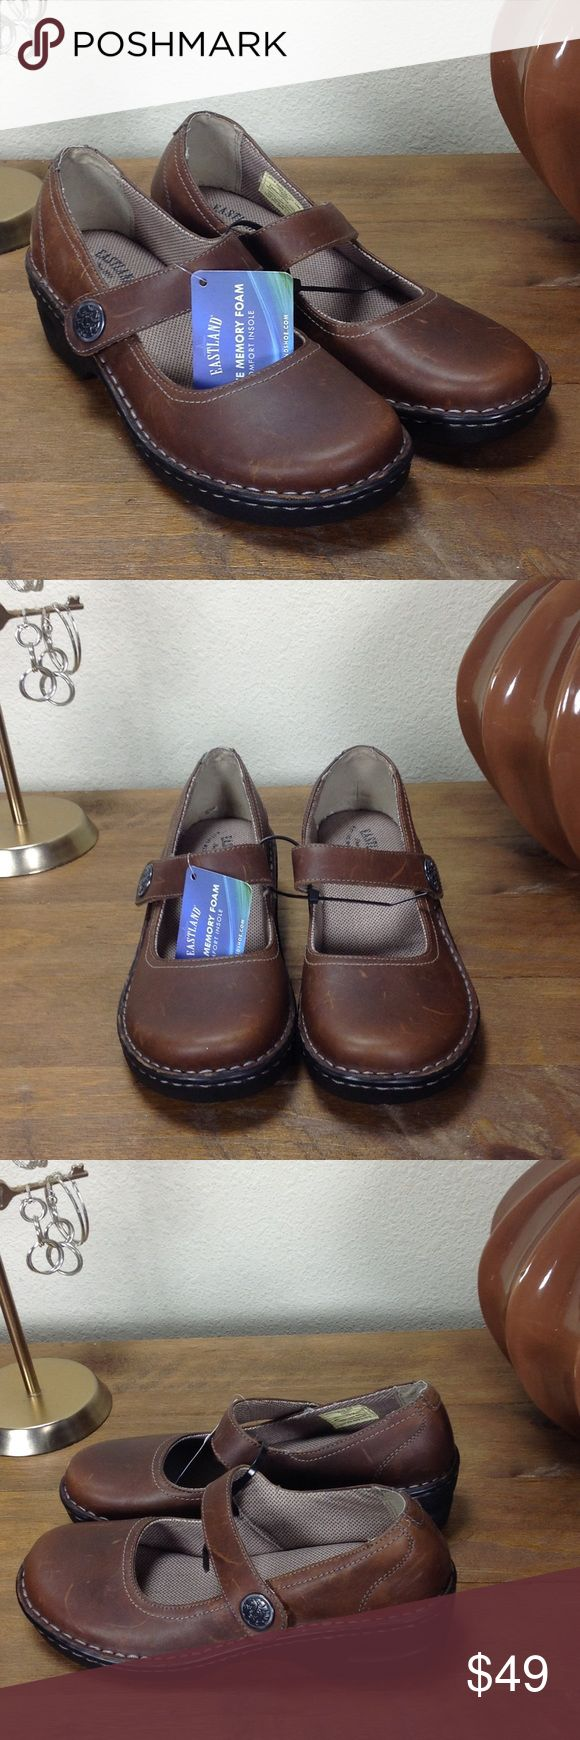 NWT Eastland Rustic Brown Leather Mary Janes New with tags rustic brown leather mary janes with memory foam insoles for the ultimate in comfort. Features 2 inch rubber and sole that make these shoes perfect for all day wear. In excellent condition with no visible scratches or marks. Thanks for your interest! Please checkout the rest of my closet. Eastland Shoes